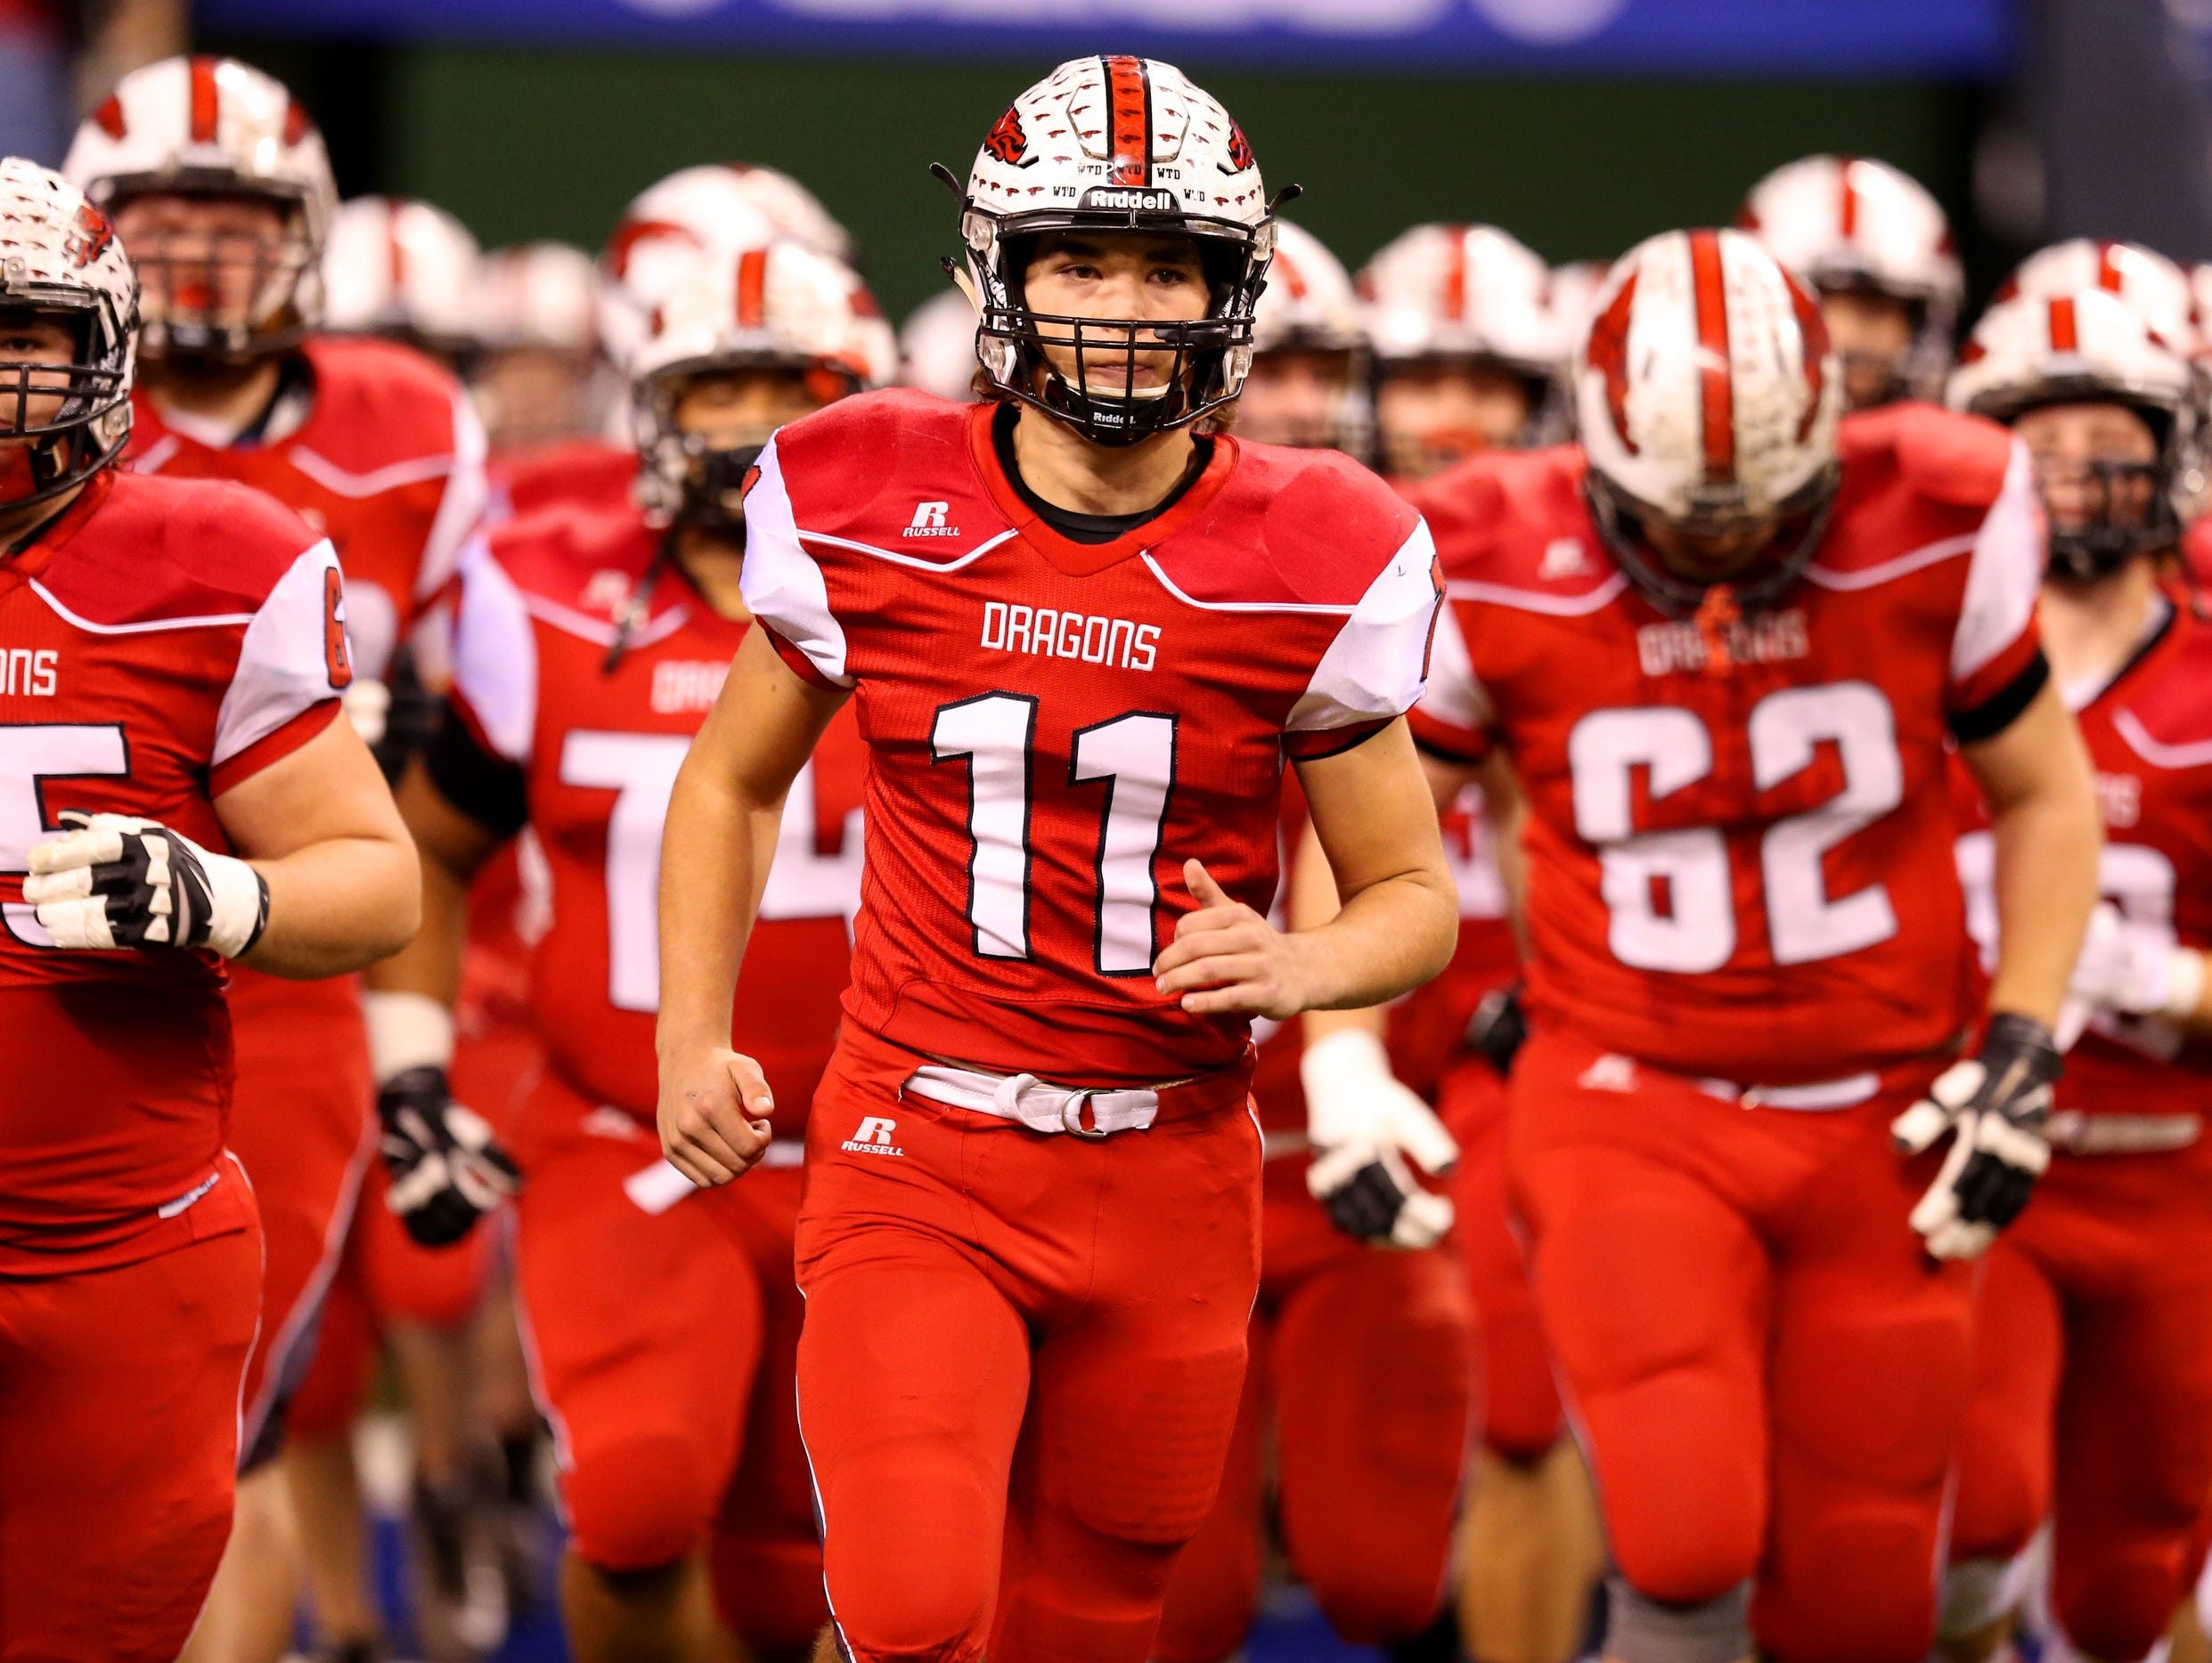 New PalestineÕs Alex Neligh (11) leads his team onto the field before playing Fort Wayne Snider at Lucas Oil Stadium on Nov. 27, 2015.